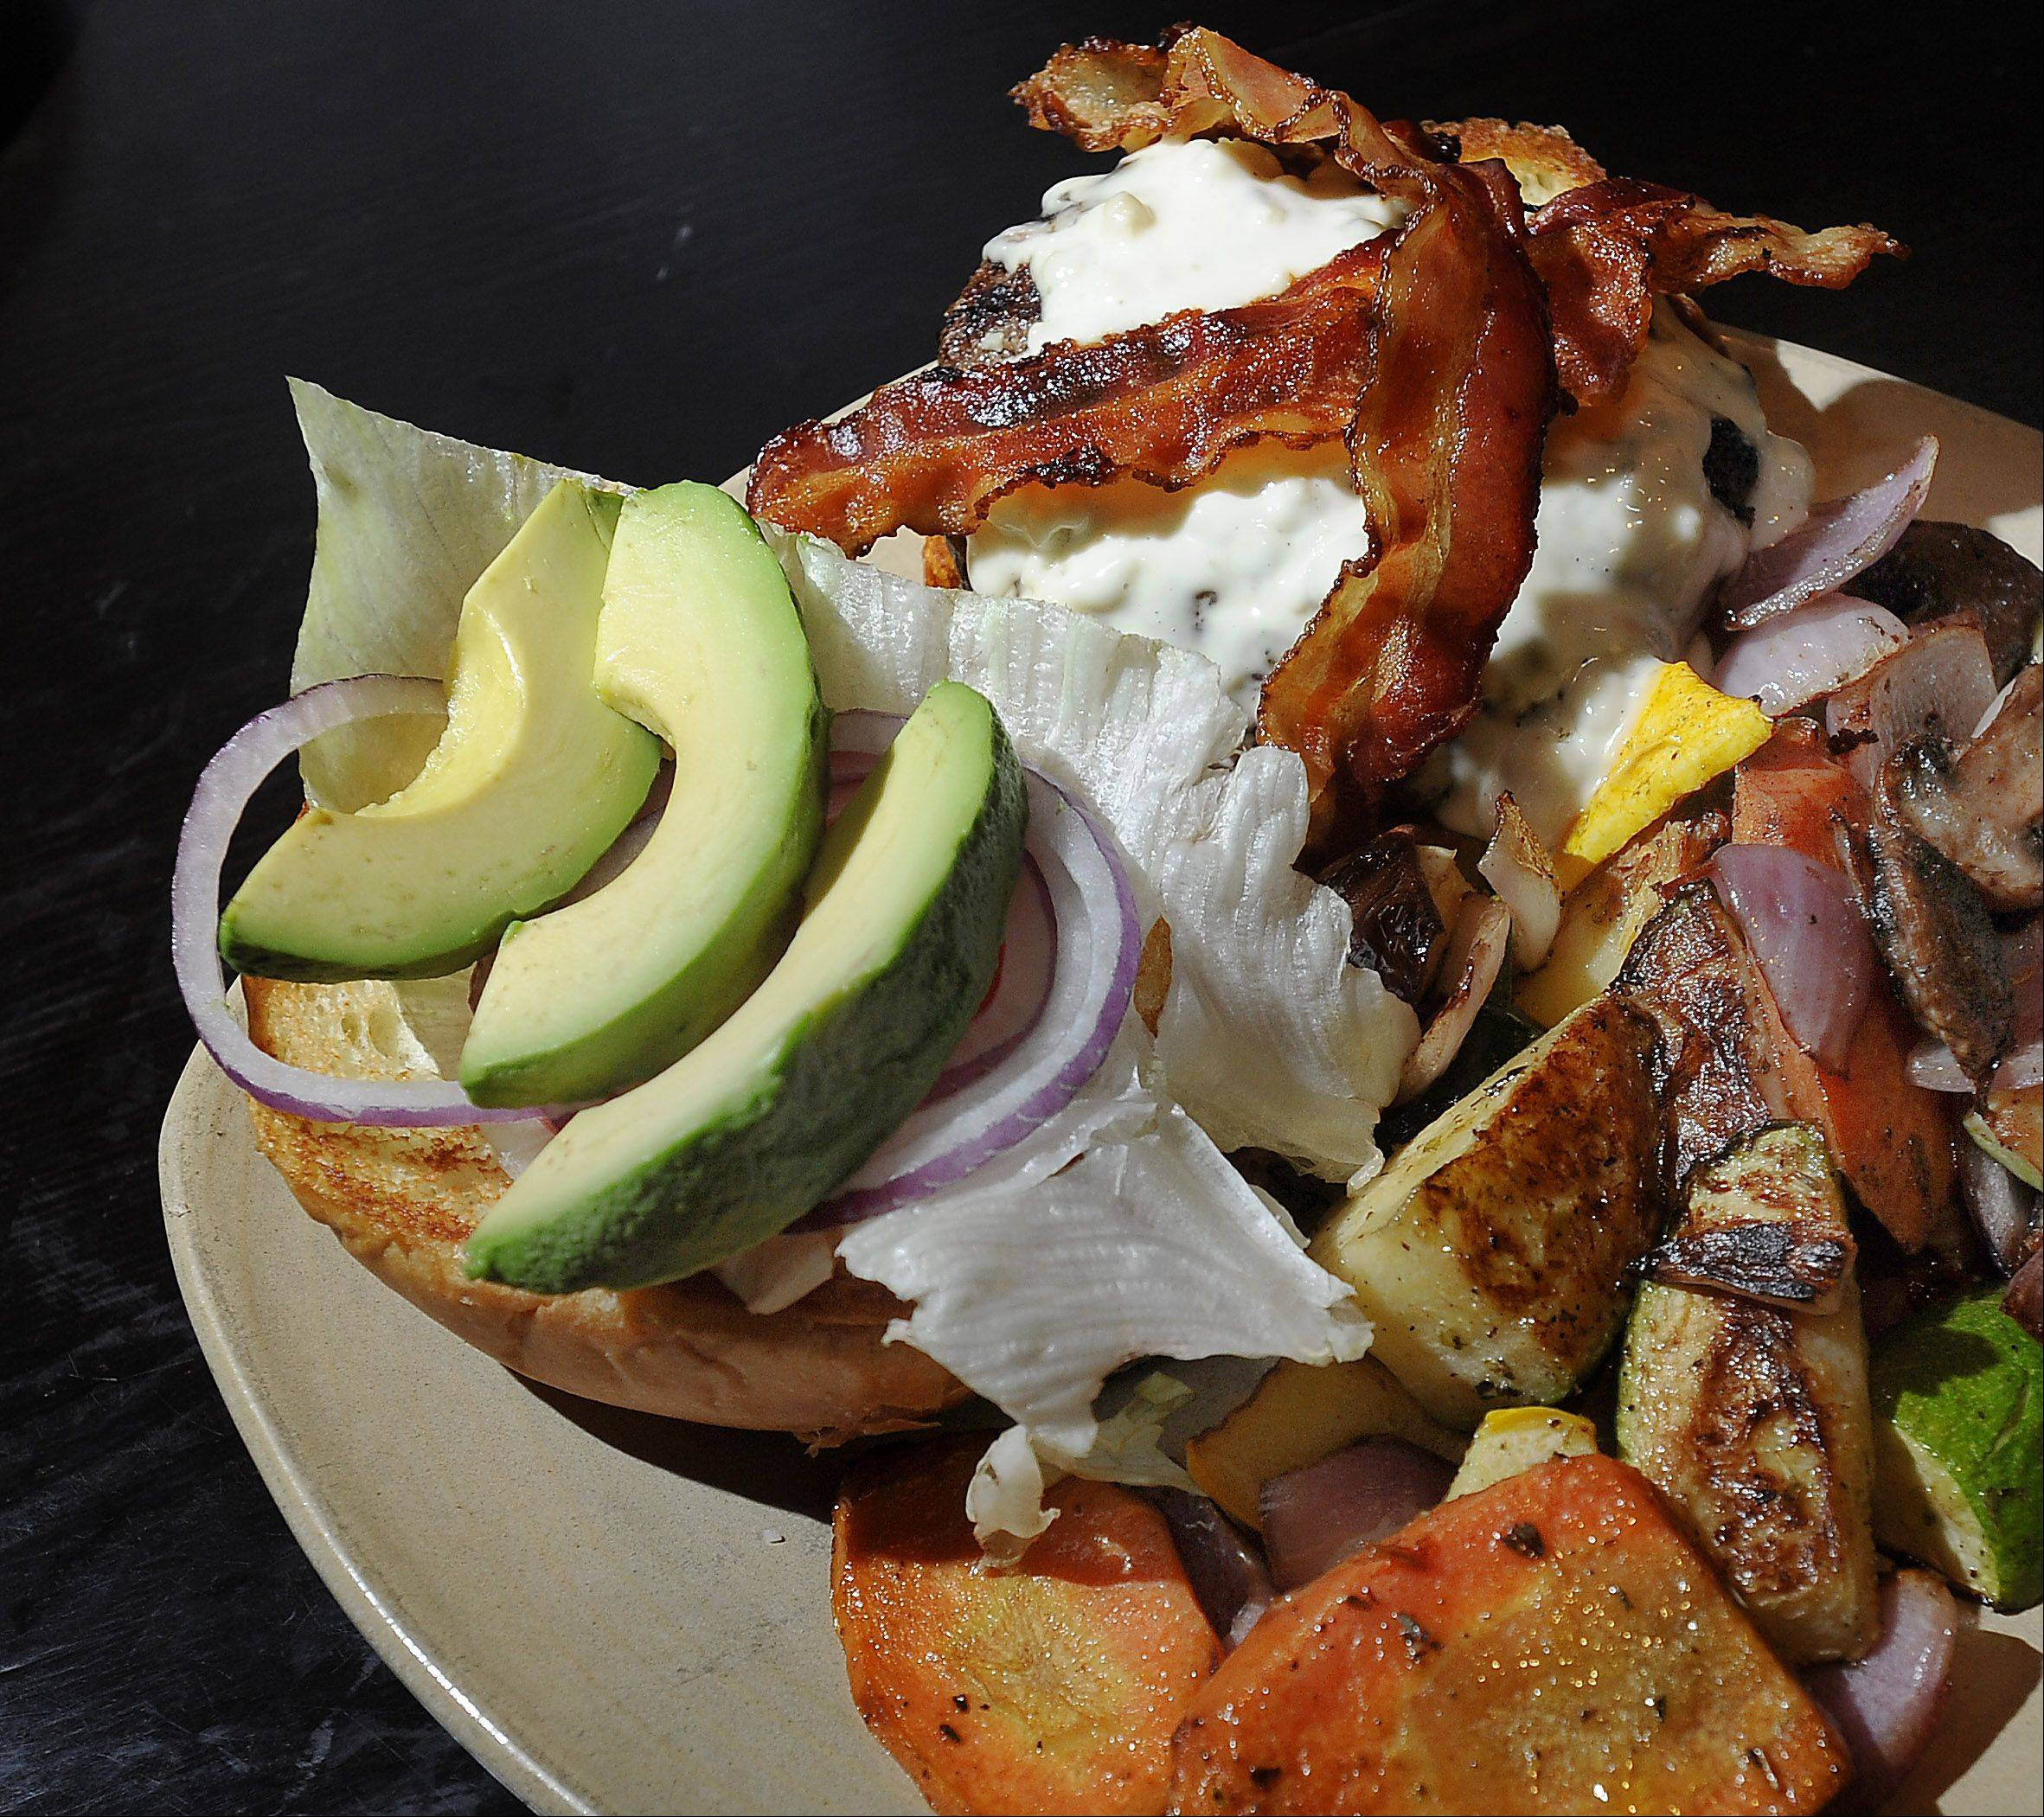 McMae's black and blue burger features blue cheese and bacon. It comes topped with avocado, lettuce and tomato.